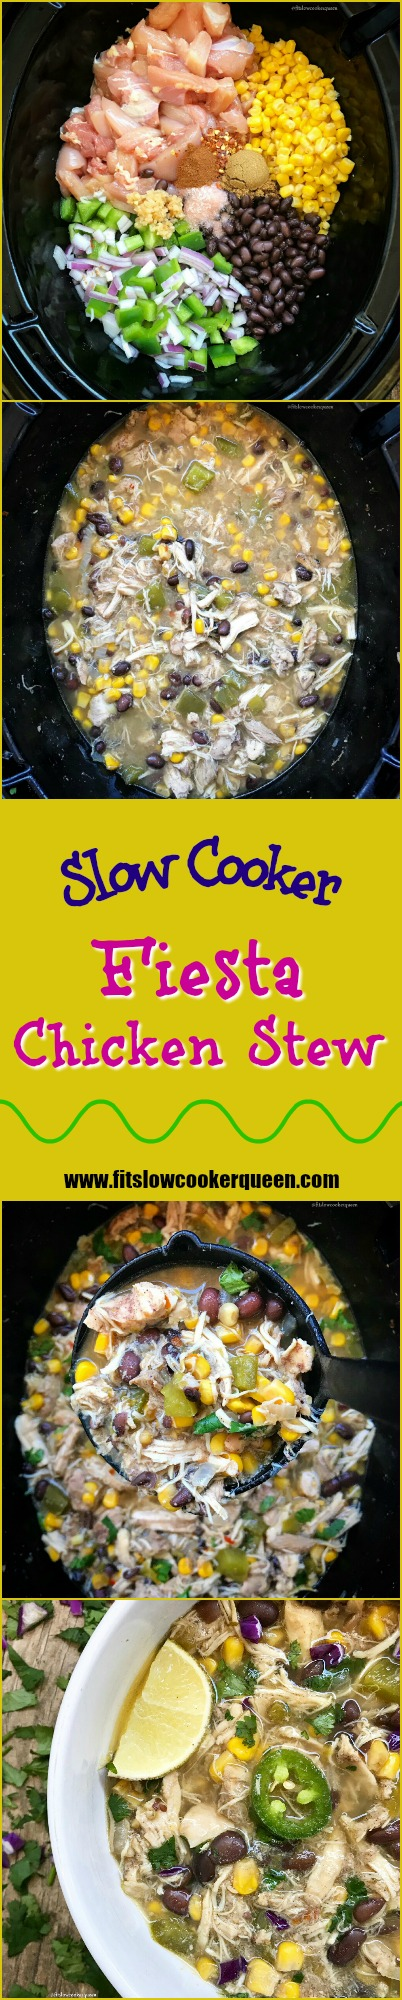 This fiesta chicken stew is definitely a party in your mouth. Bursting with flavor, this easy and healthy slow cooker recipe can be served anytime of the year.